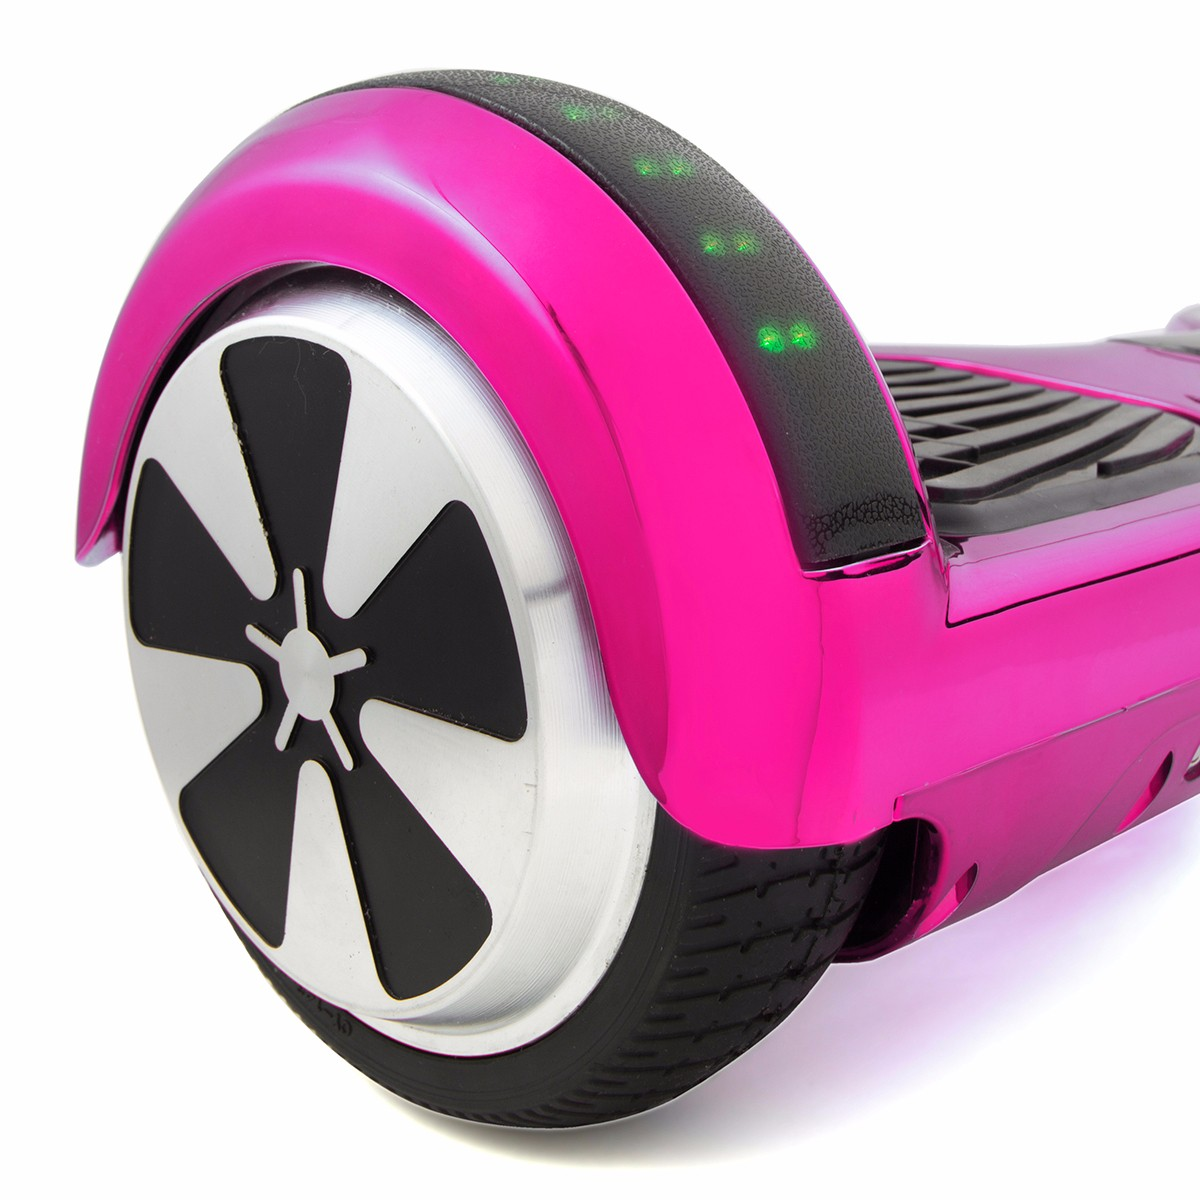 Self Balancing Electric Scooter Hoverboard UL CERTIFIED, Pink ...